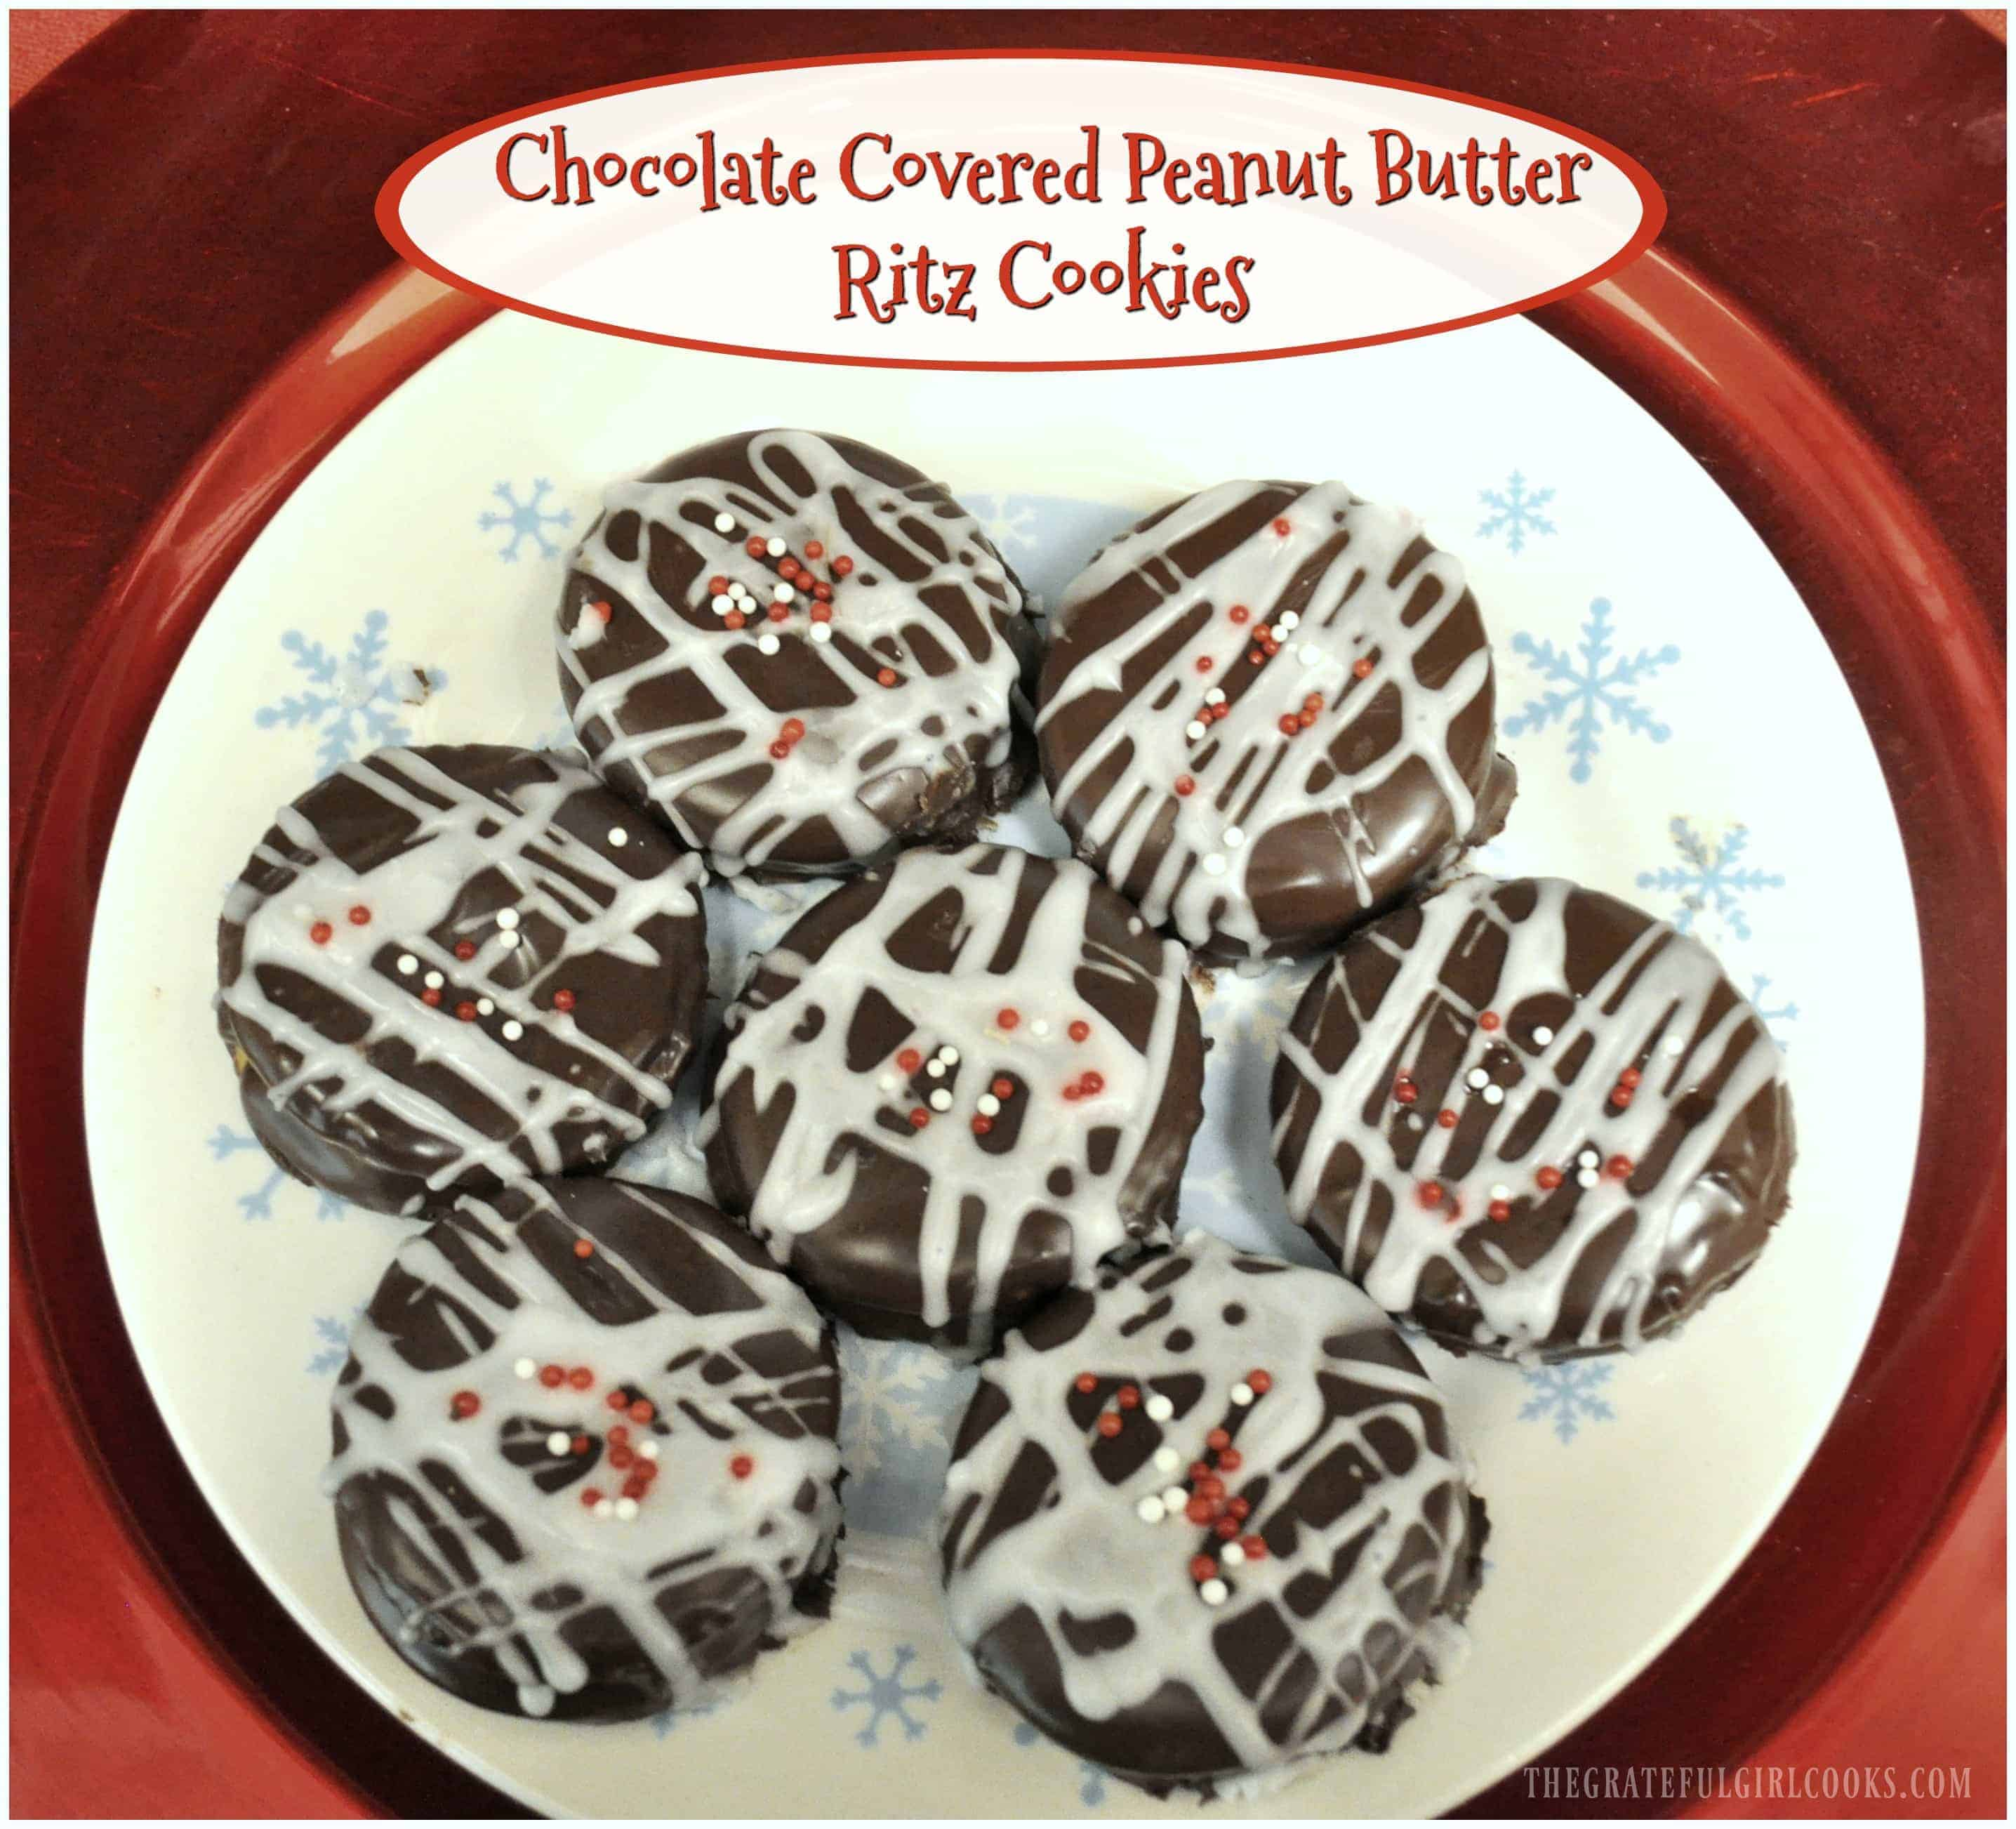 Chocolate Covered Peanut Butter Ritz Cookies / The Grateful Girl Cooks! Crunchy, creamy, peanut butter filled chocolate covered buttery cracker cookies are quick and easy holiday treats to make, using only a few ingredients!